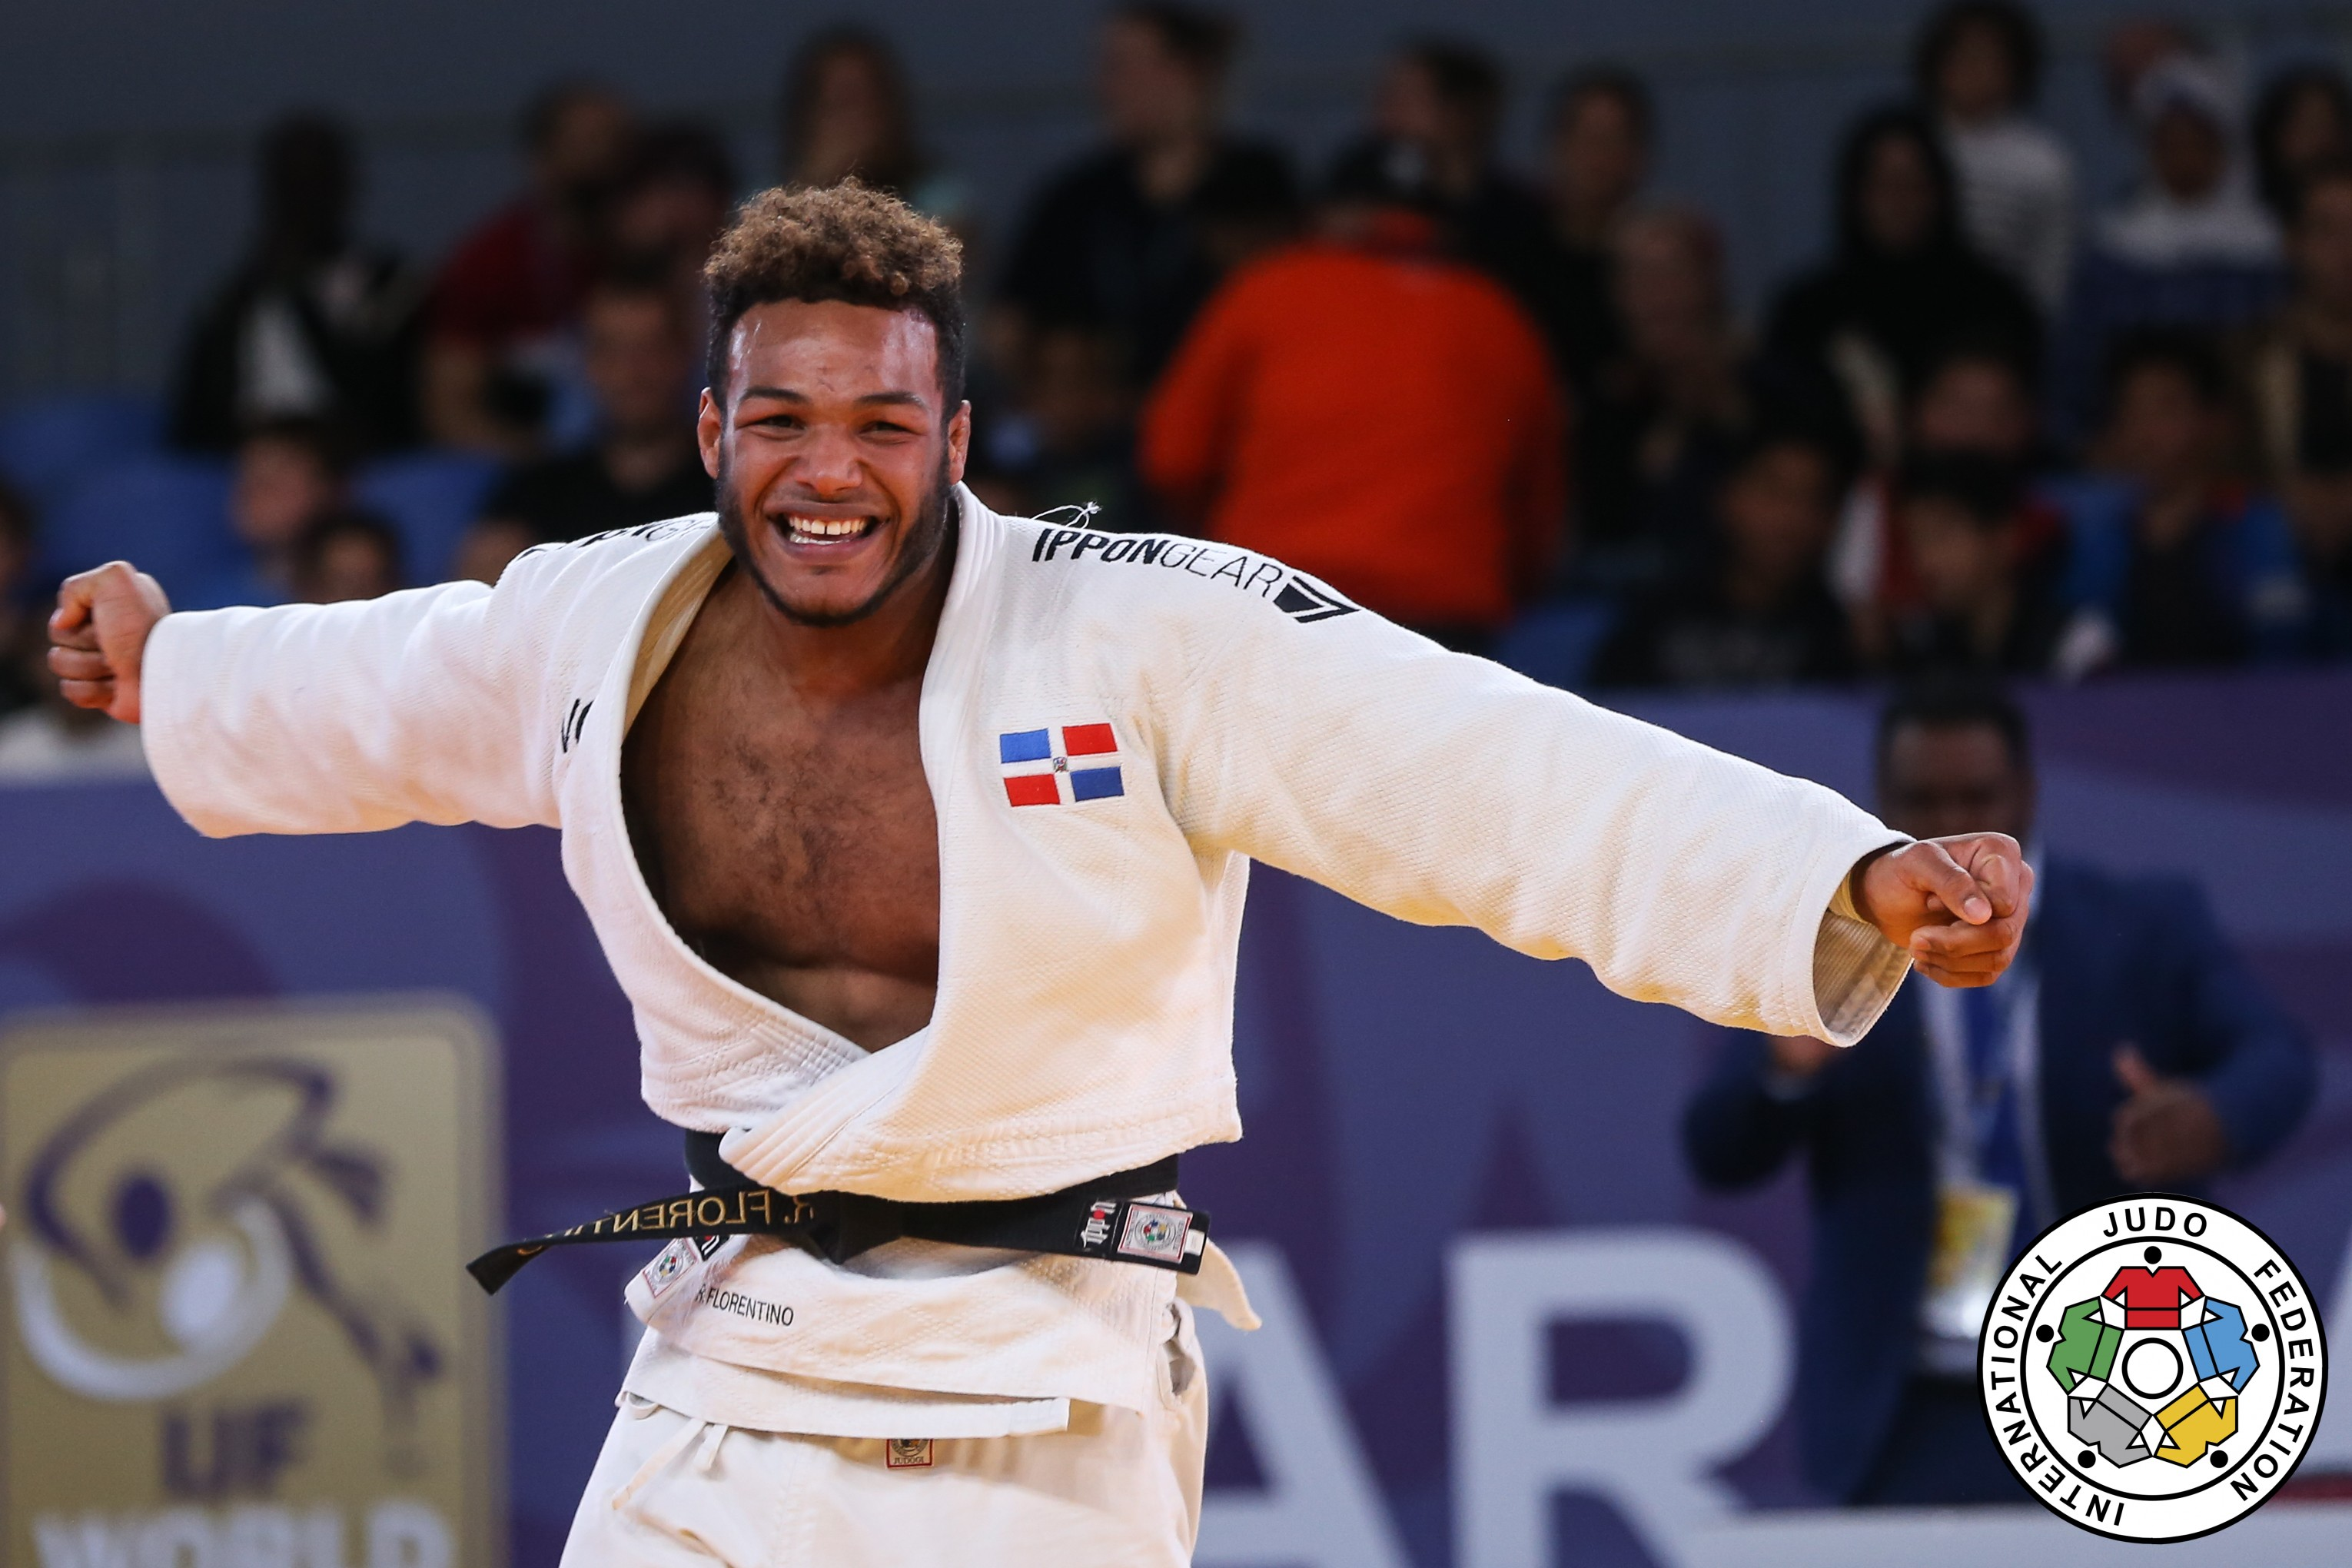 Judo-Grand-Prix-Marrakech-Marocco-2019-Florentino-Robert-Dominican-Republic-90-kg-Bronze-1